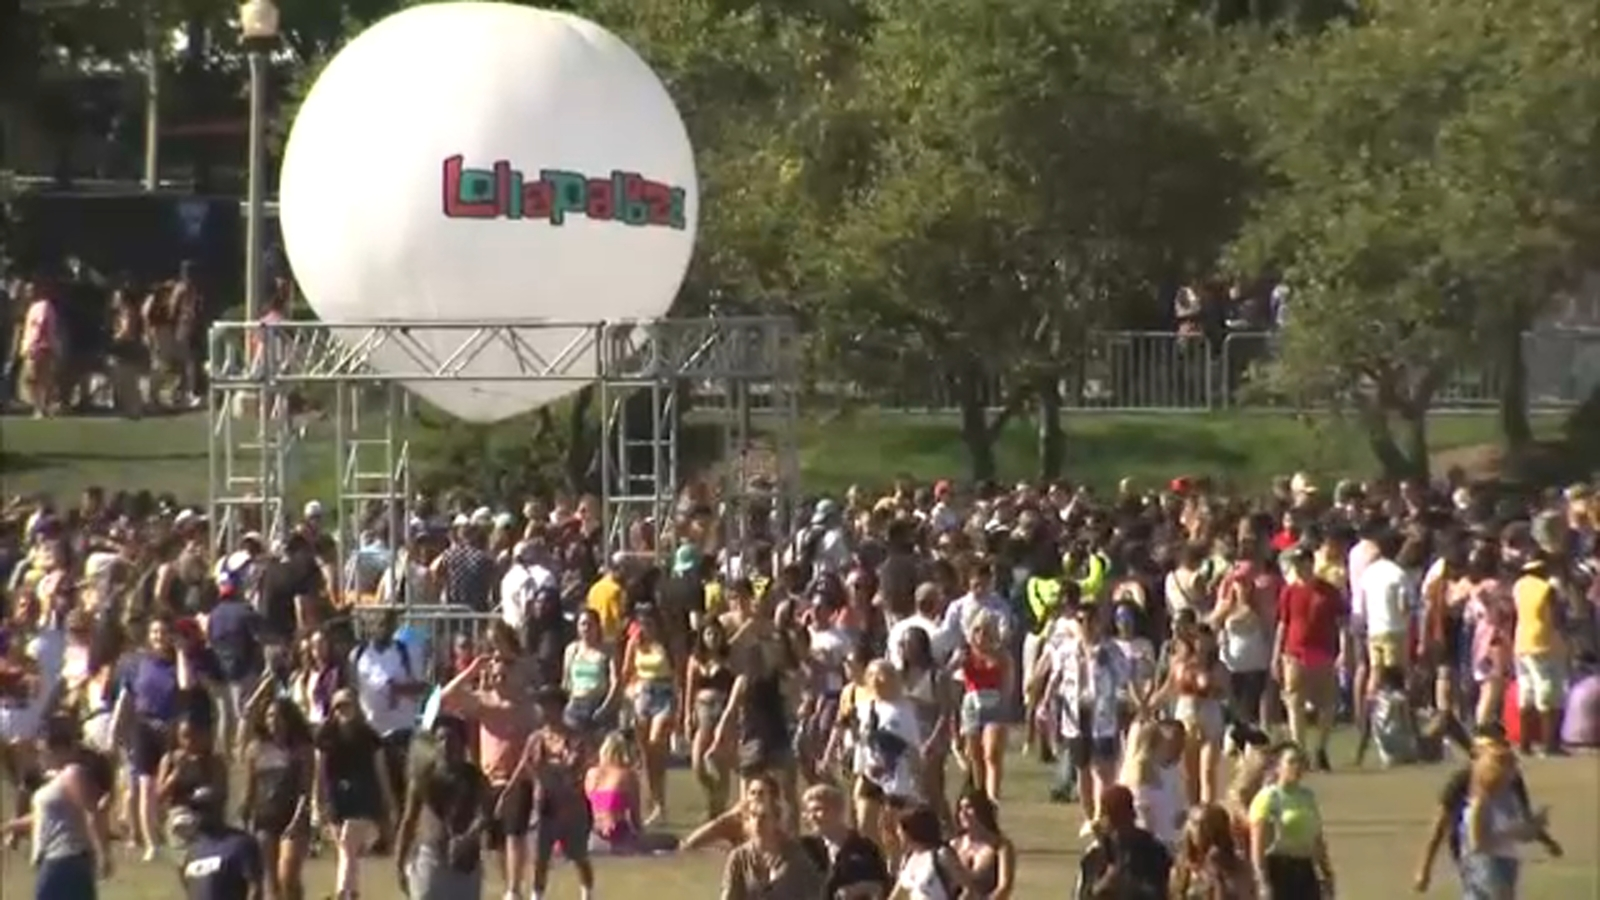 Lollapalooza COVID rules: FBI warns against using fake documents to get in Chicago music festival